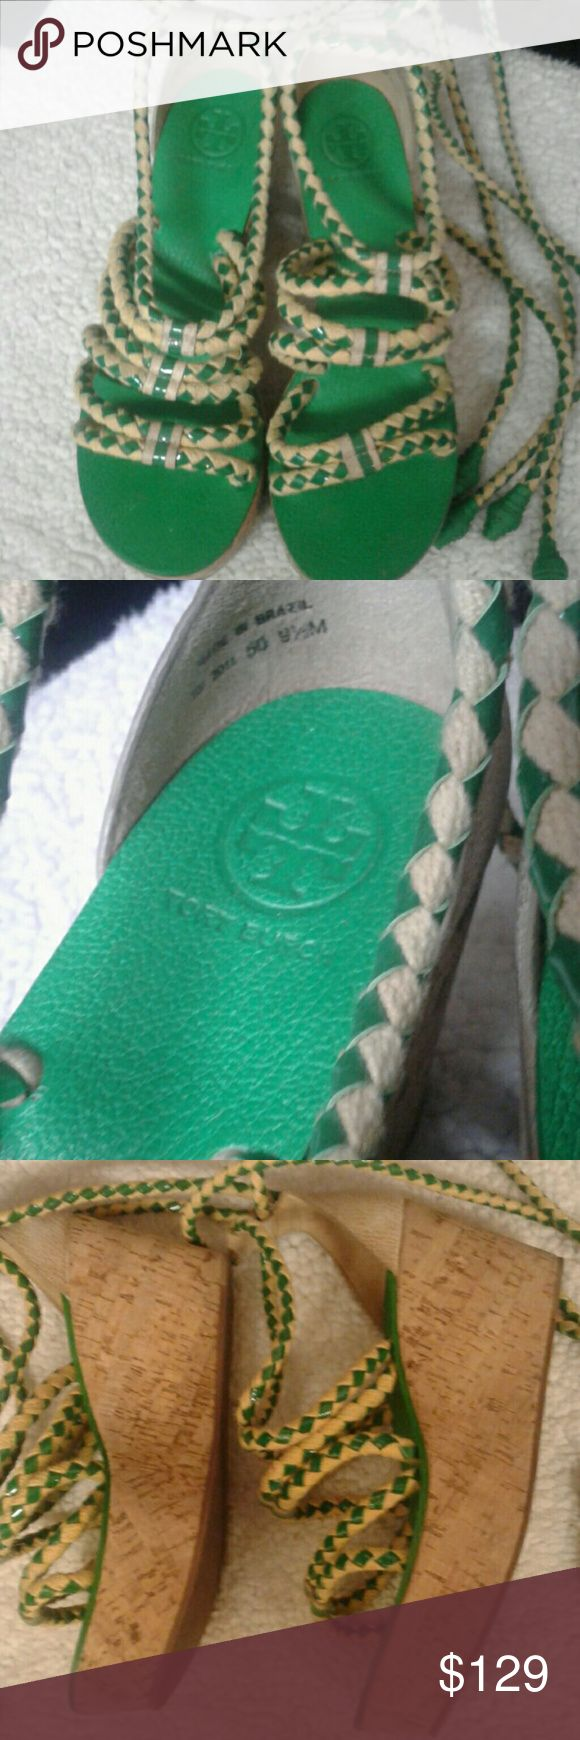 Tory Burch rope wedge shoes size 9 1/2 medium Stunning sexy Tory Burch shoes green wedge heels green and cream rope tie up the leg or where the bottom this is a rare color in very good shape shows very little wear Tory Burch Shoes